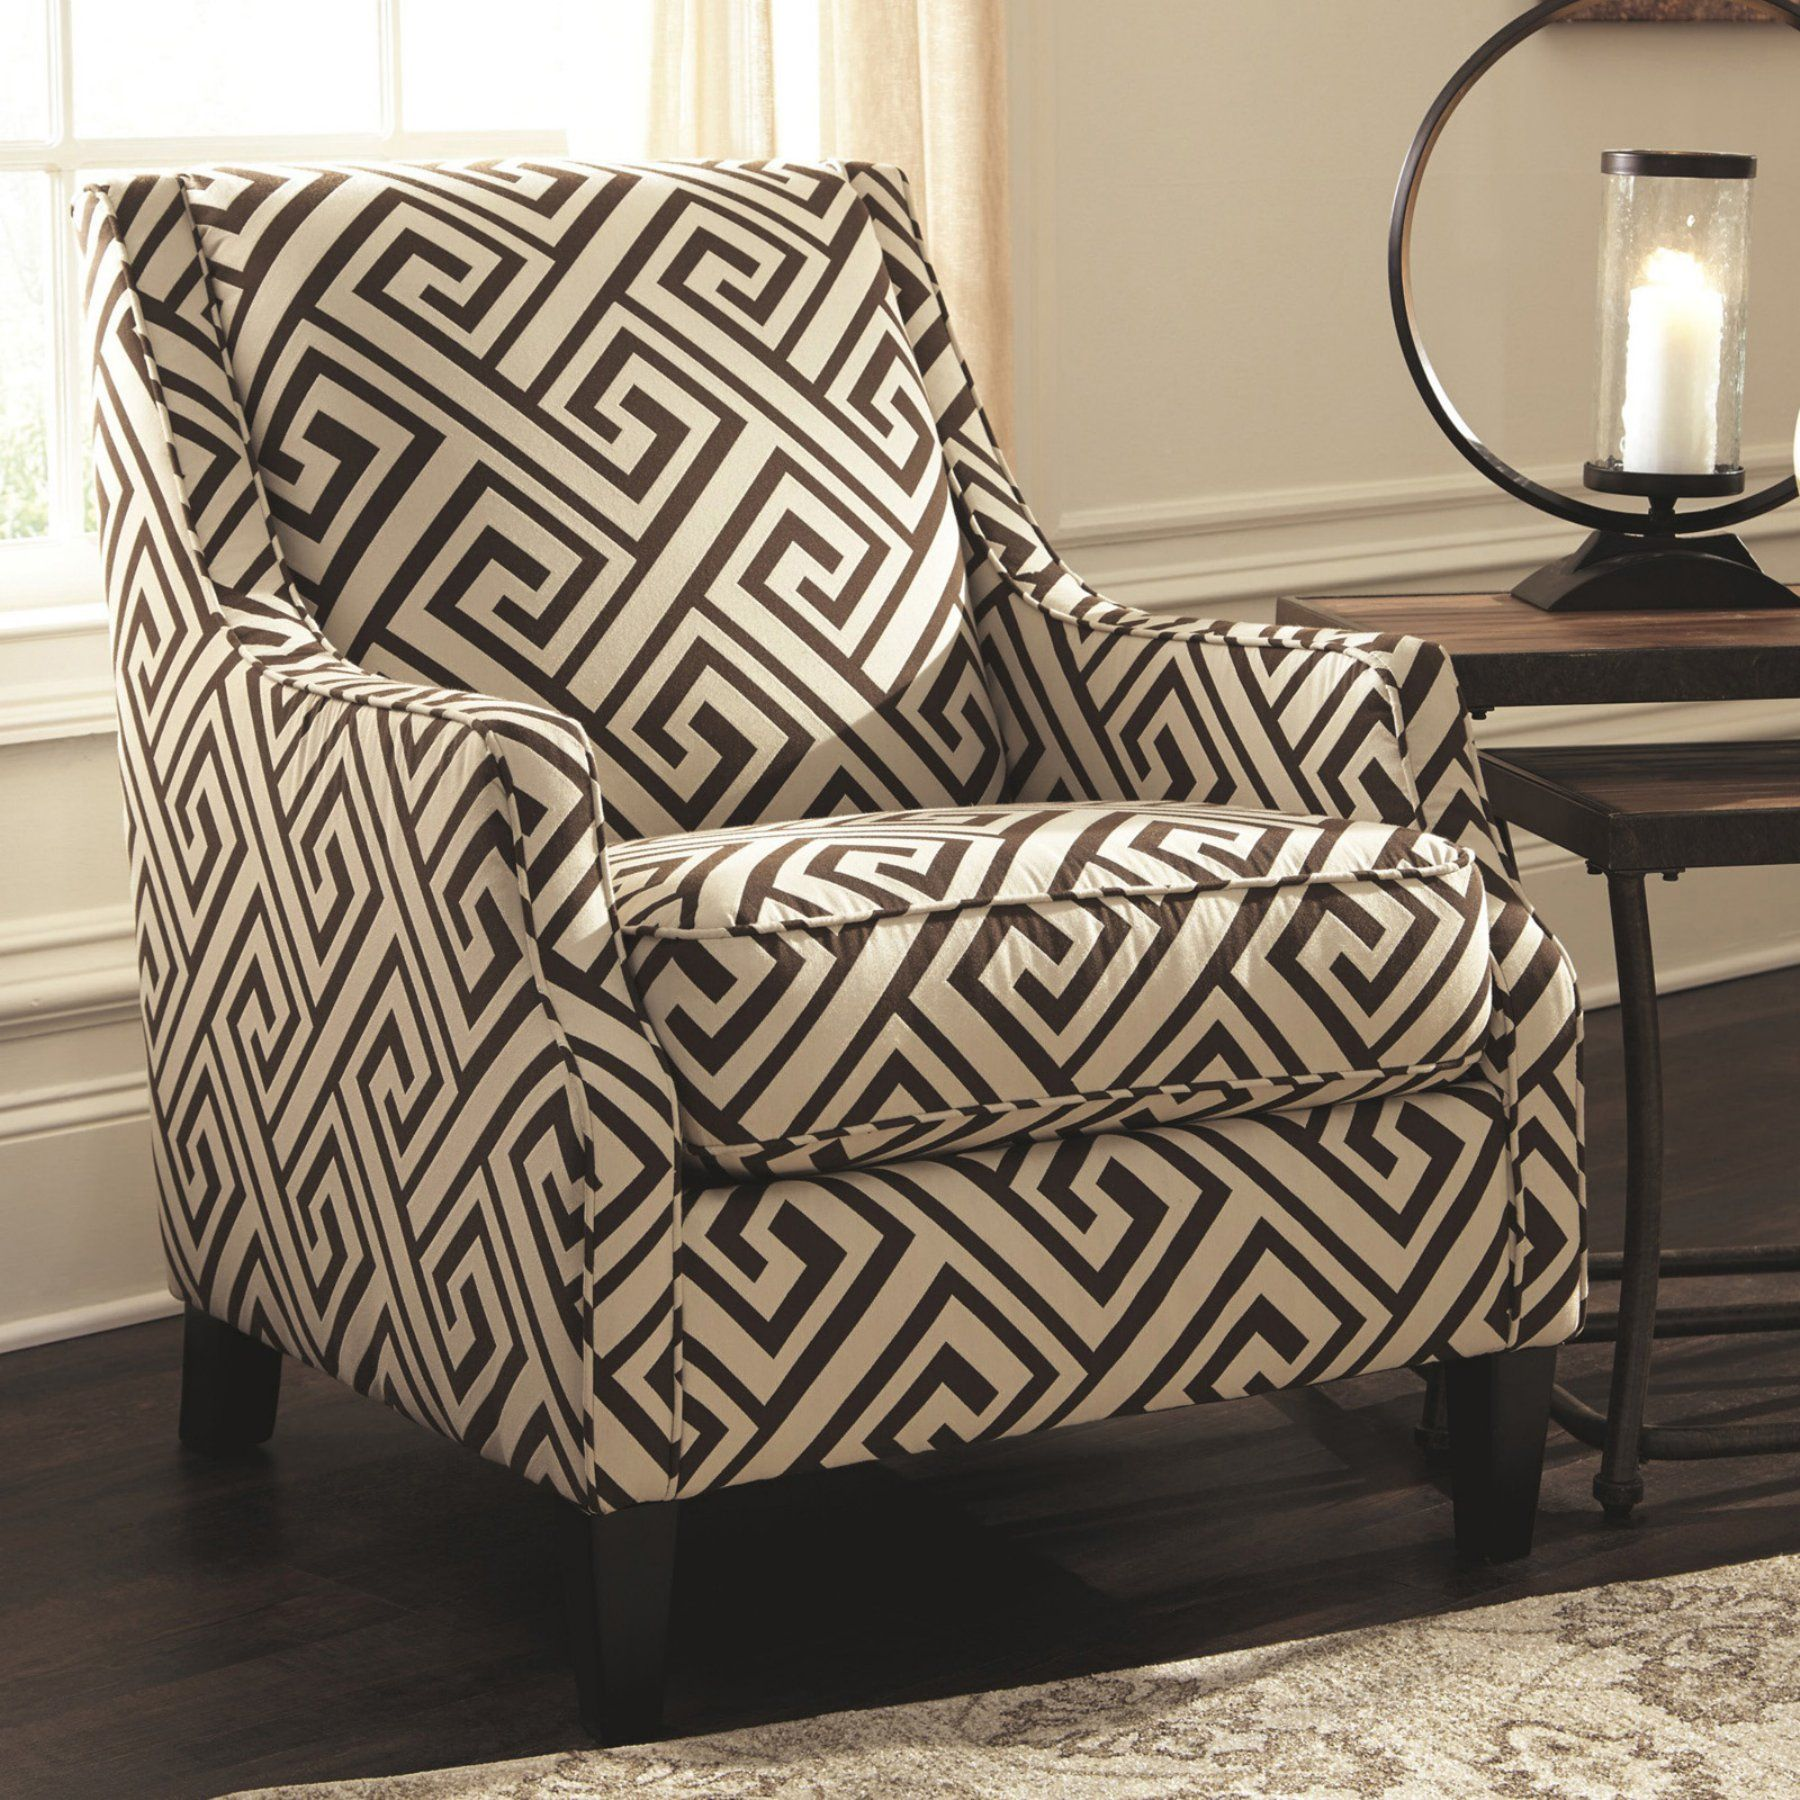 Benchcraft Carlinworth Accent Chair 8440121 Accent Chairs Ashley Furniture Chairs Furniture